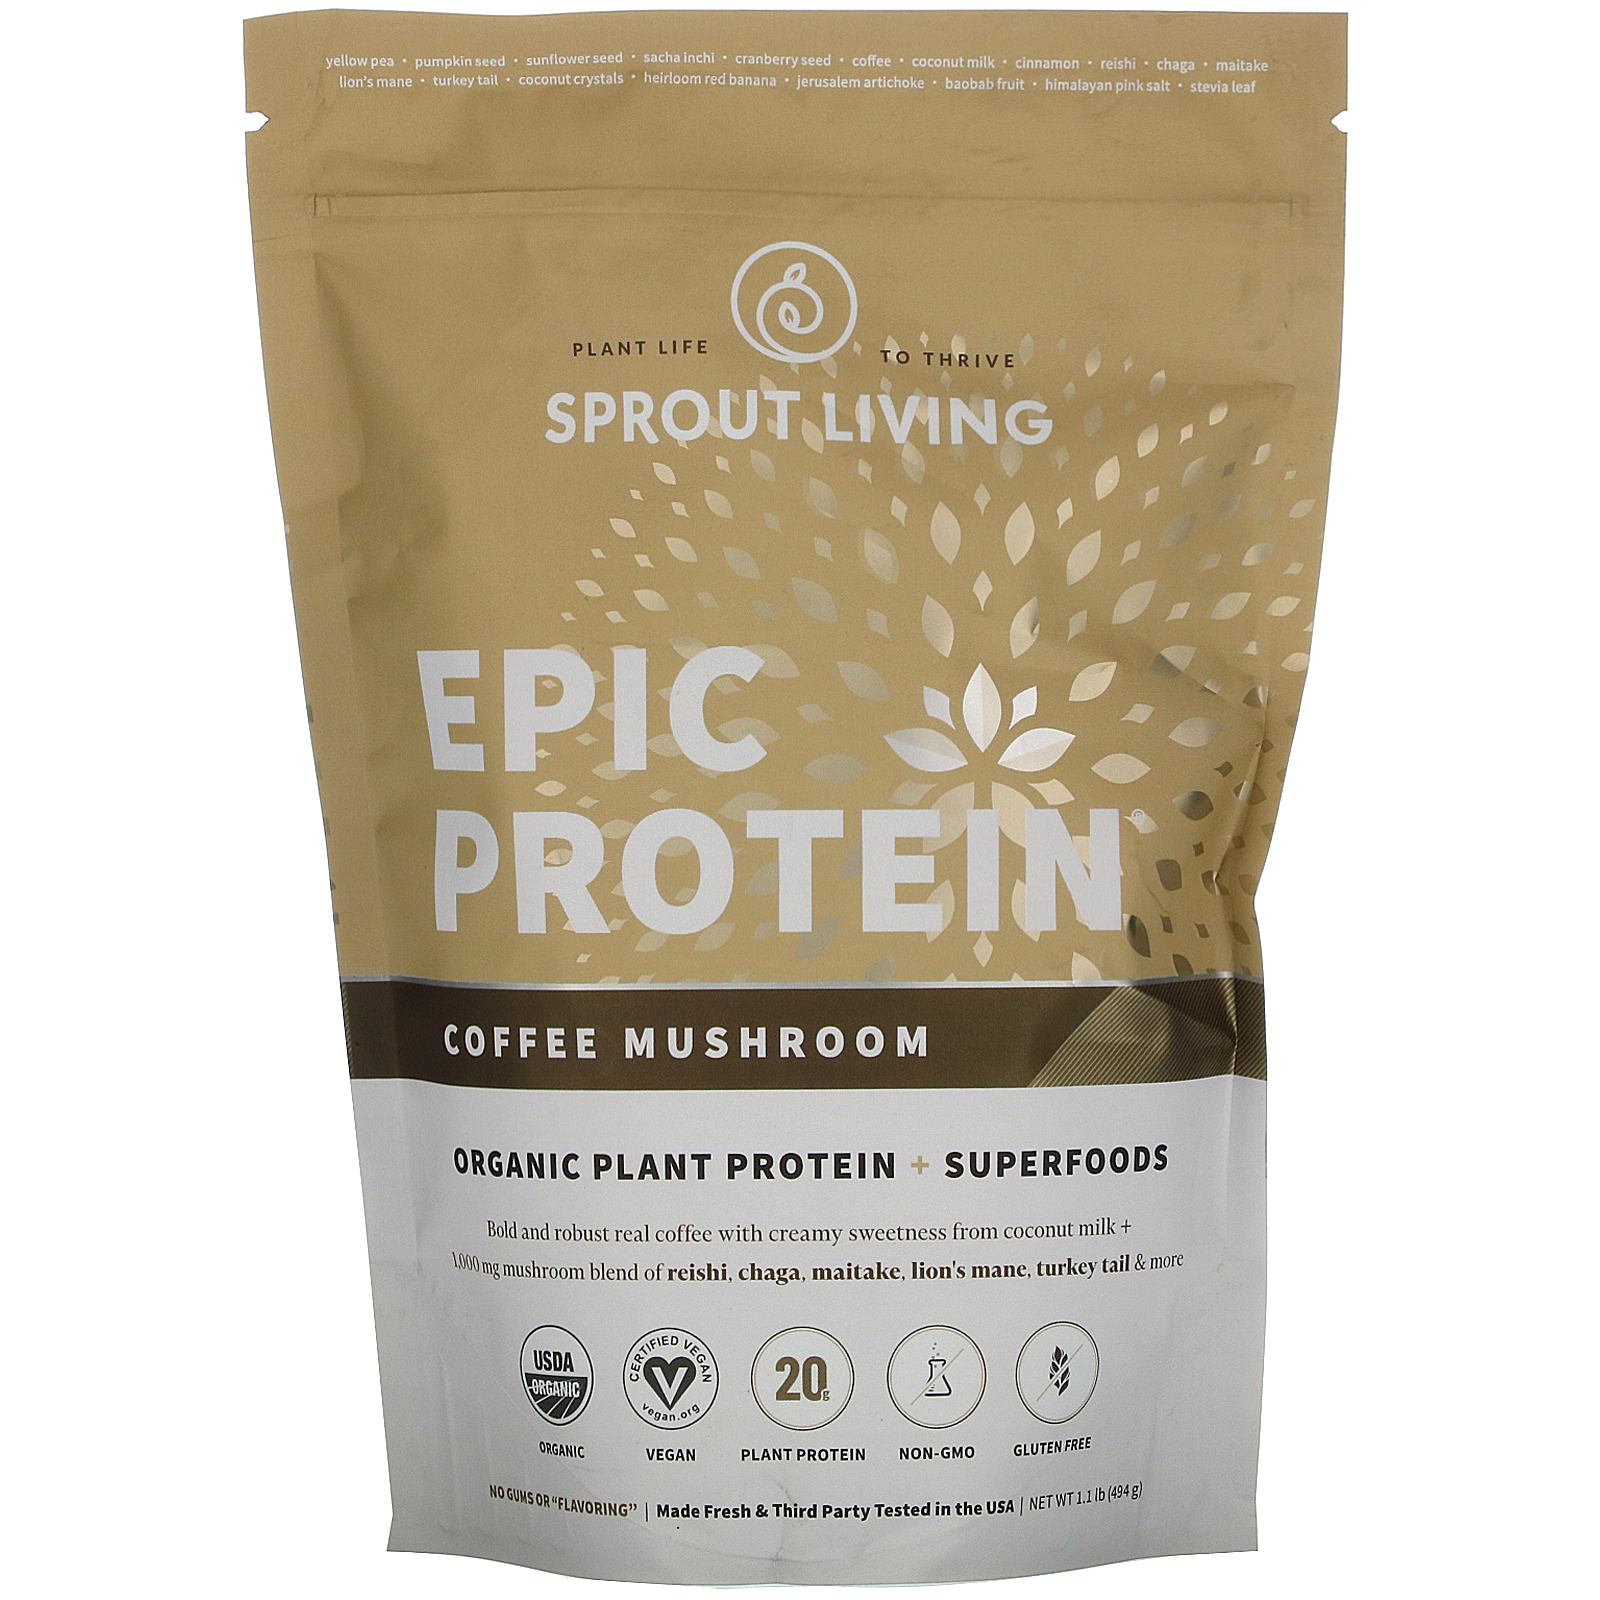 Sprout Living, Epic Protein, Organic Plant Protein + Superfoods, Coffee Mushroom, 1.1 lb (494 g)